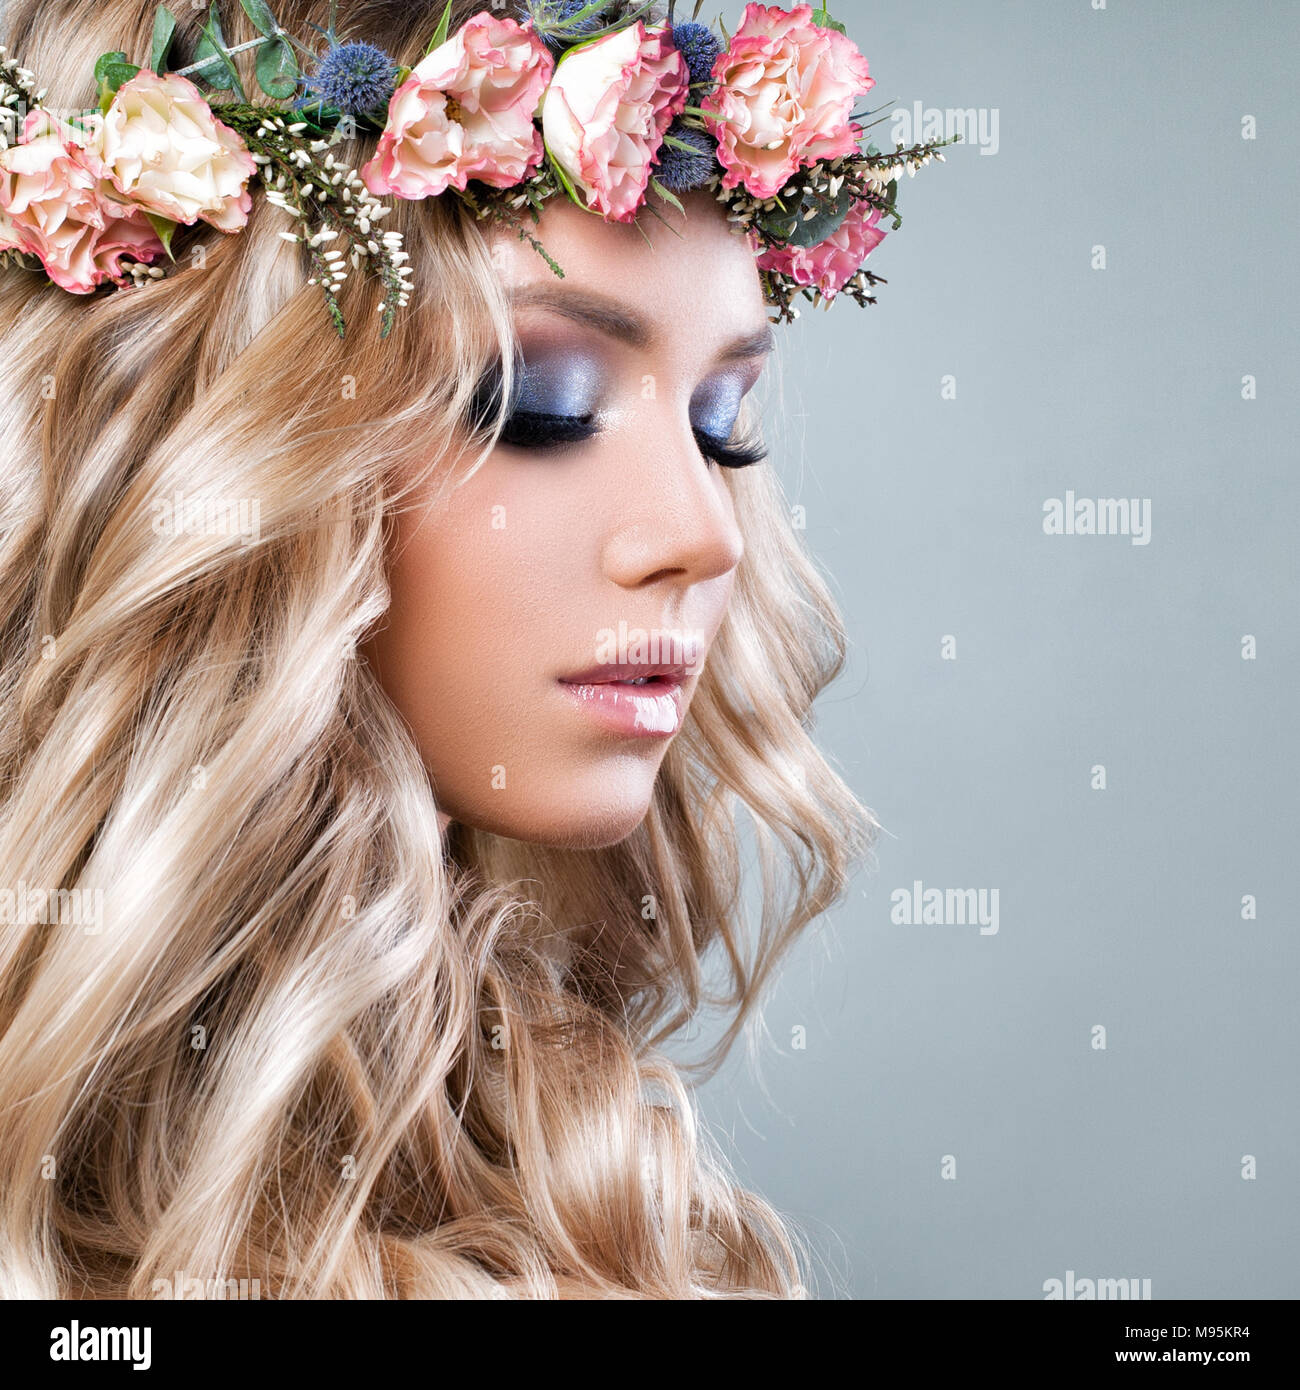 Beautiful woman with summer pink flowers blonde beauty long permed beautiful woman with summer pink flowers blonde beauty long permed curly hair and fashion makeup beauty girl with flowers hairstyle closeup portra mightylinksfo